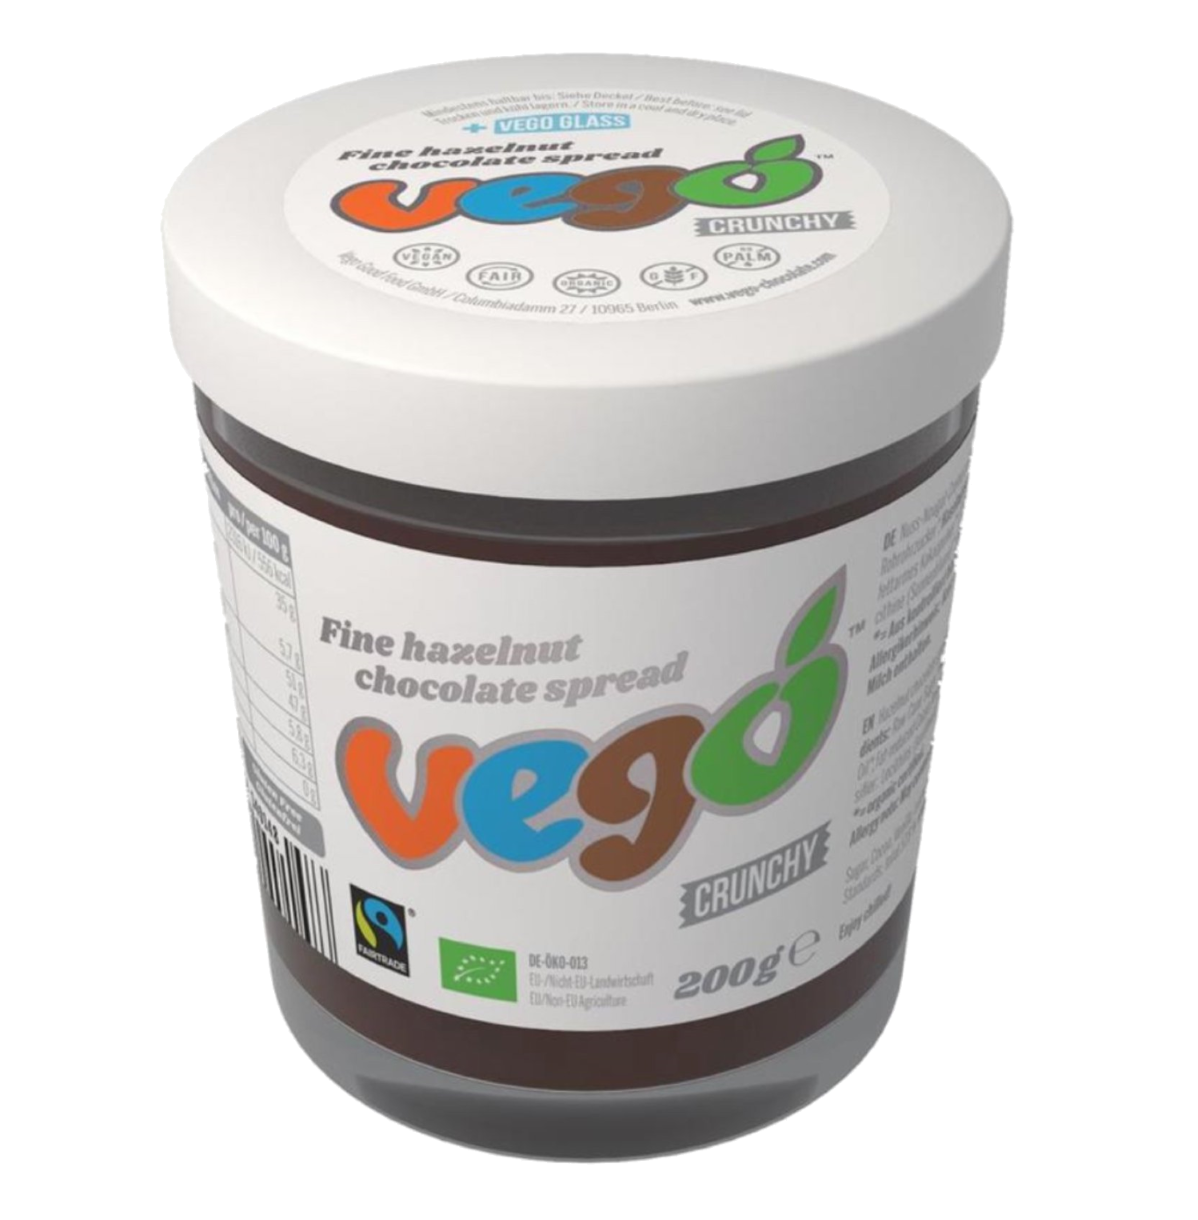 Vego Crunchy Hazelnut Chocolate Spread 200g - Vegan Pantry Brisbane